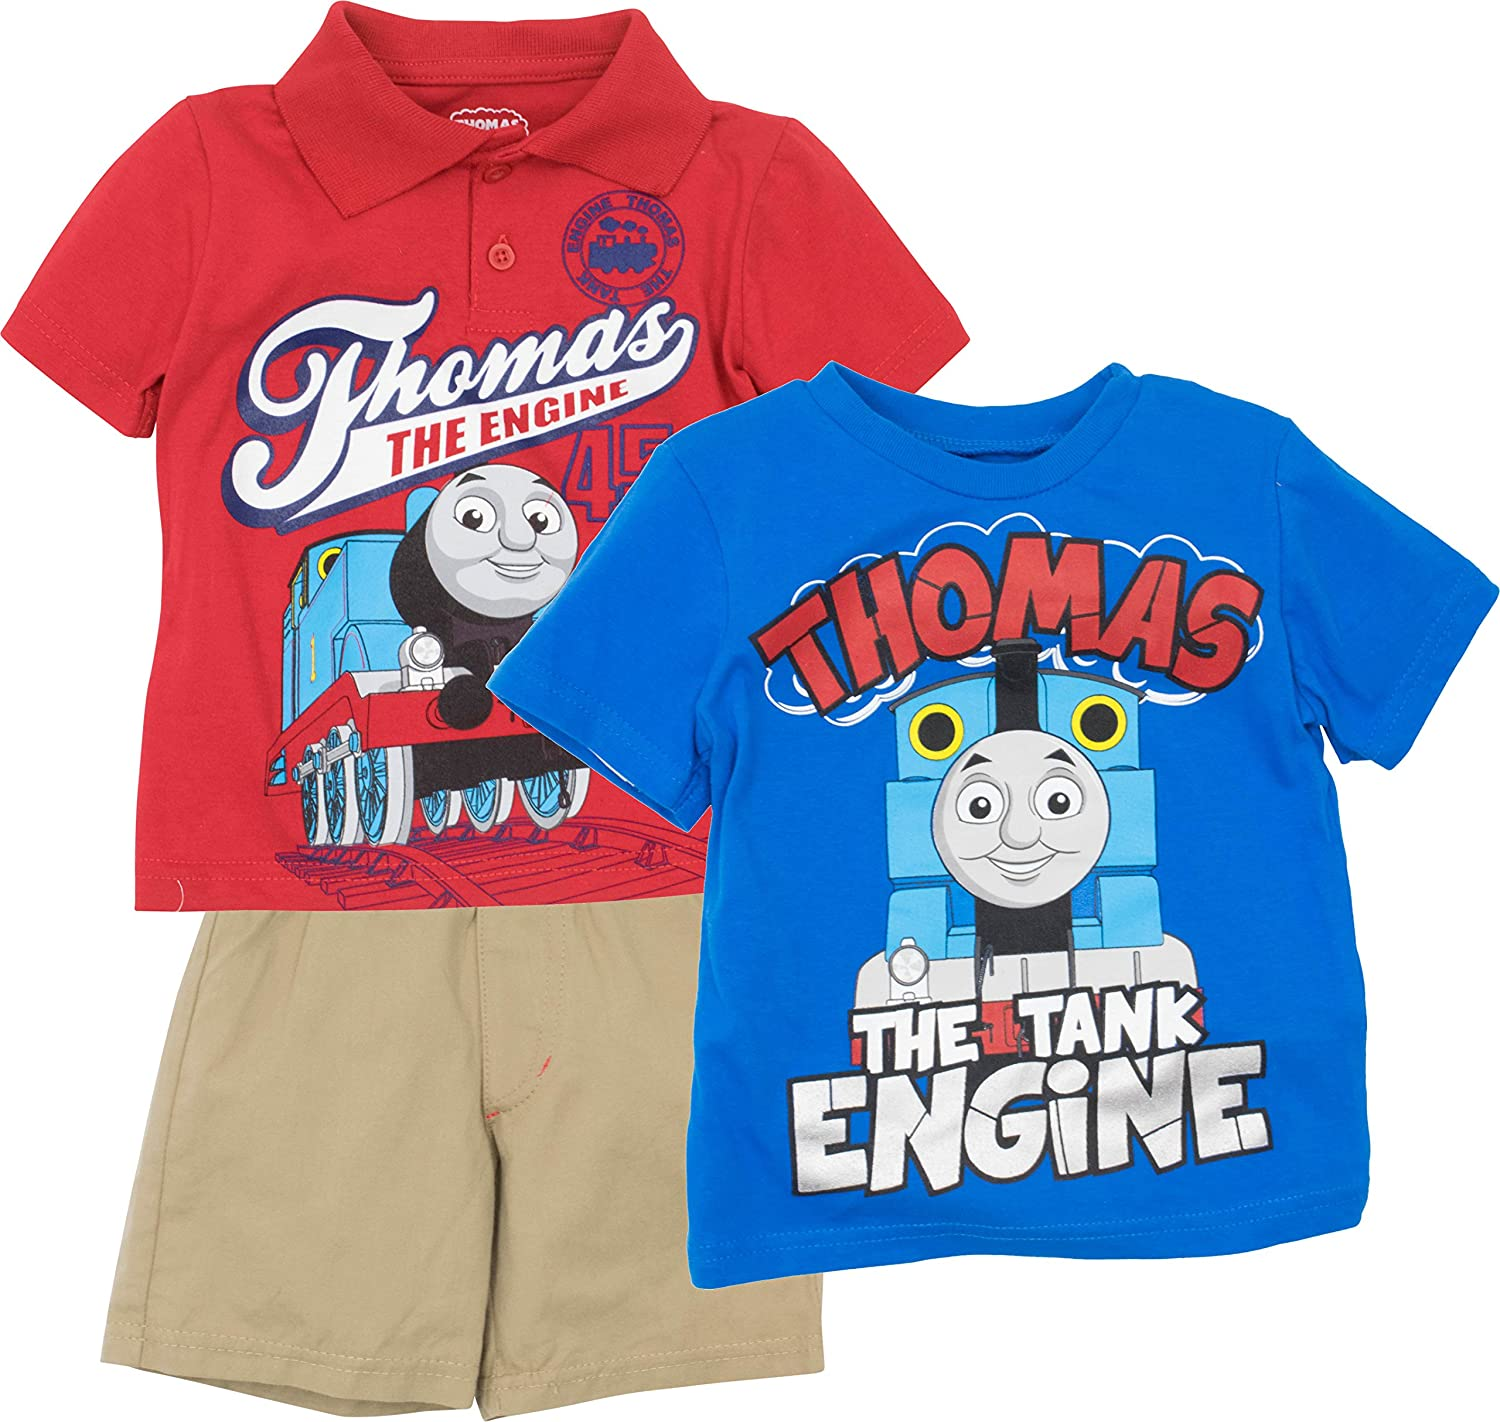 BOYS  OUTFIT 2 PIECE SET SHORTS AND T-SHIRT THOMAS THE TANK ENGINE